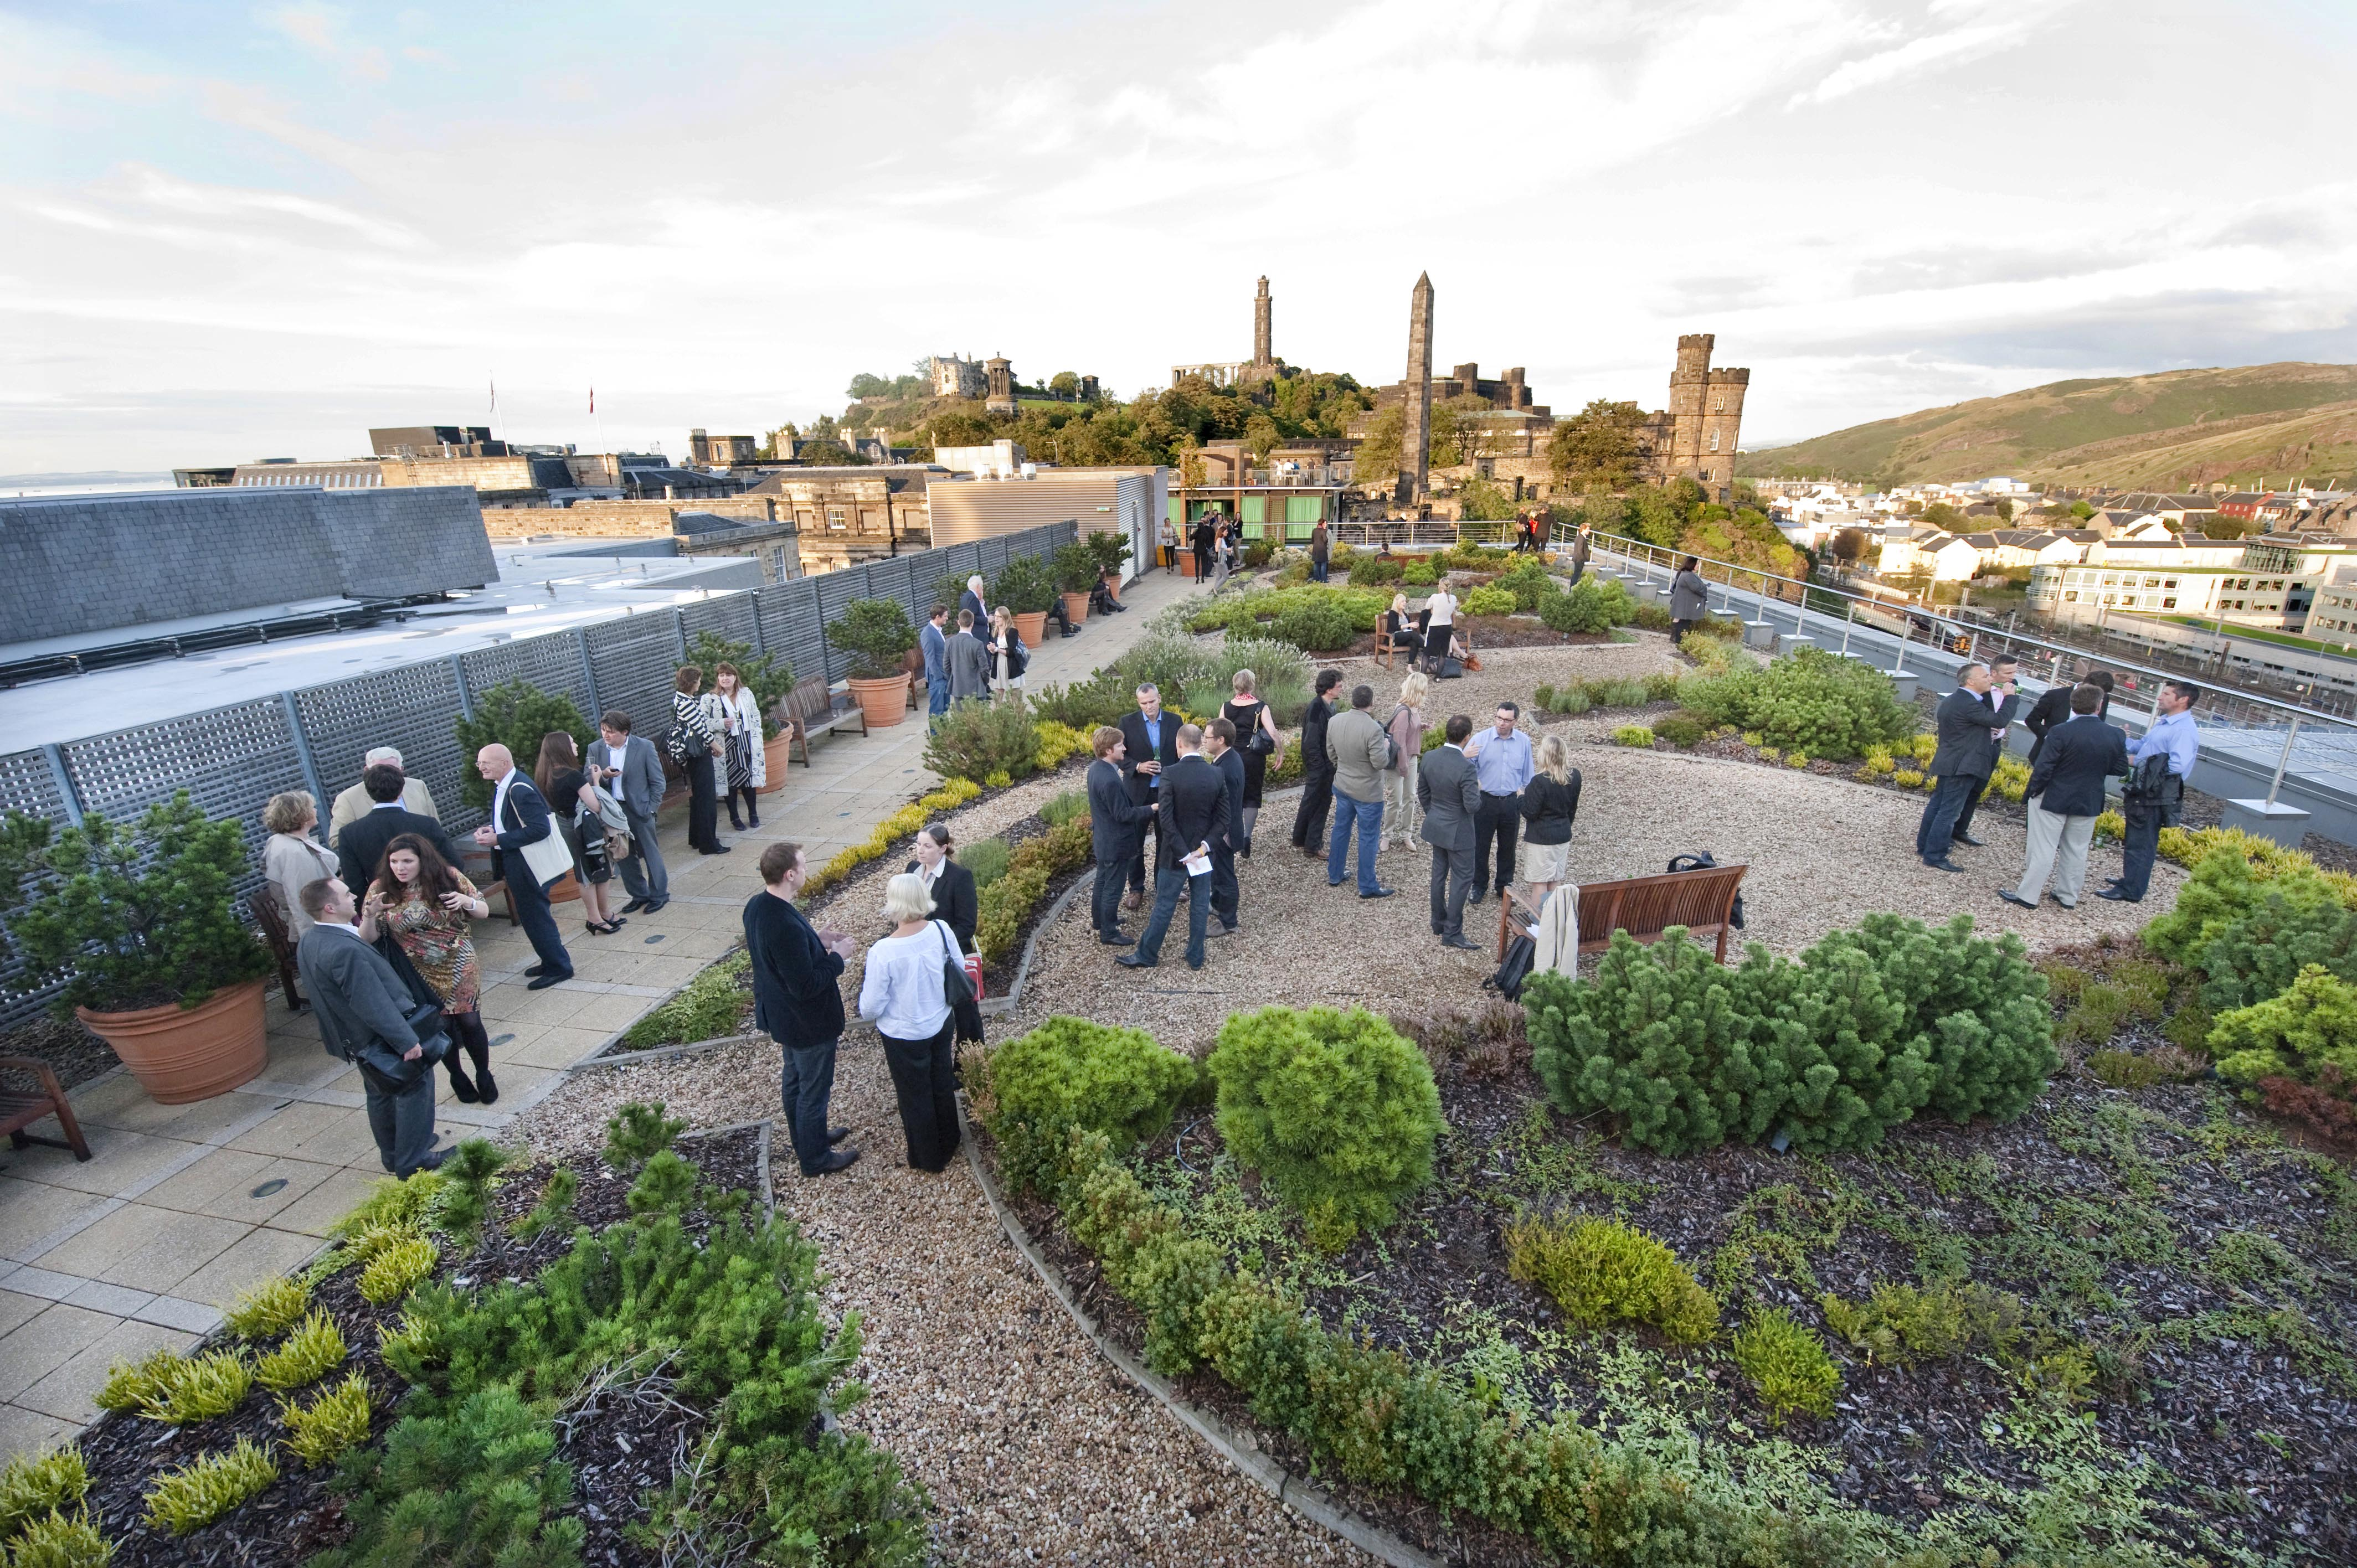 Waverley Gate Roof Garden